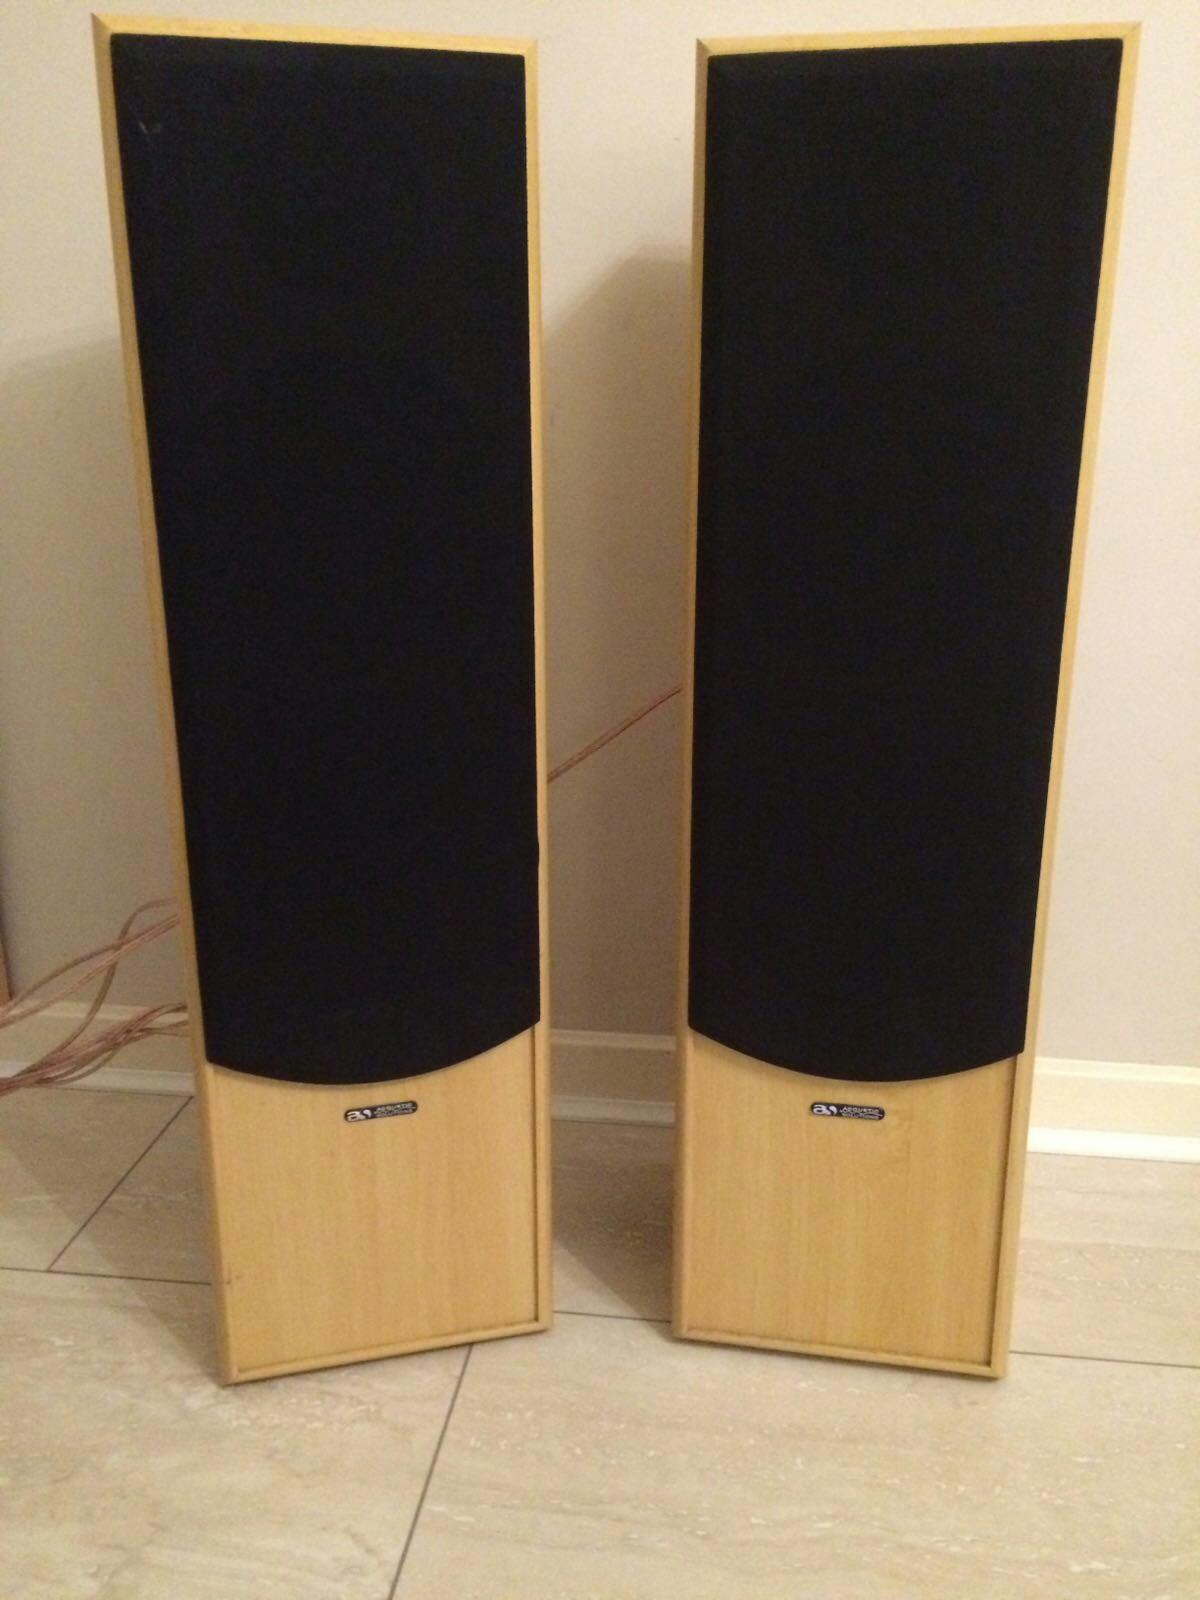 Yamaha amp + acoustic solutions speakers